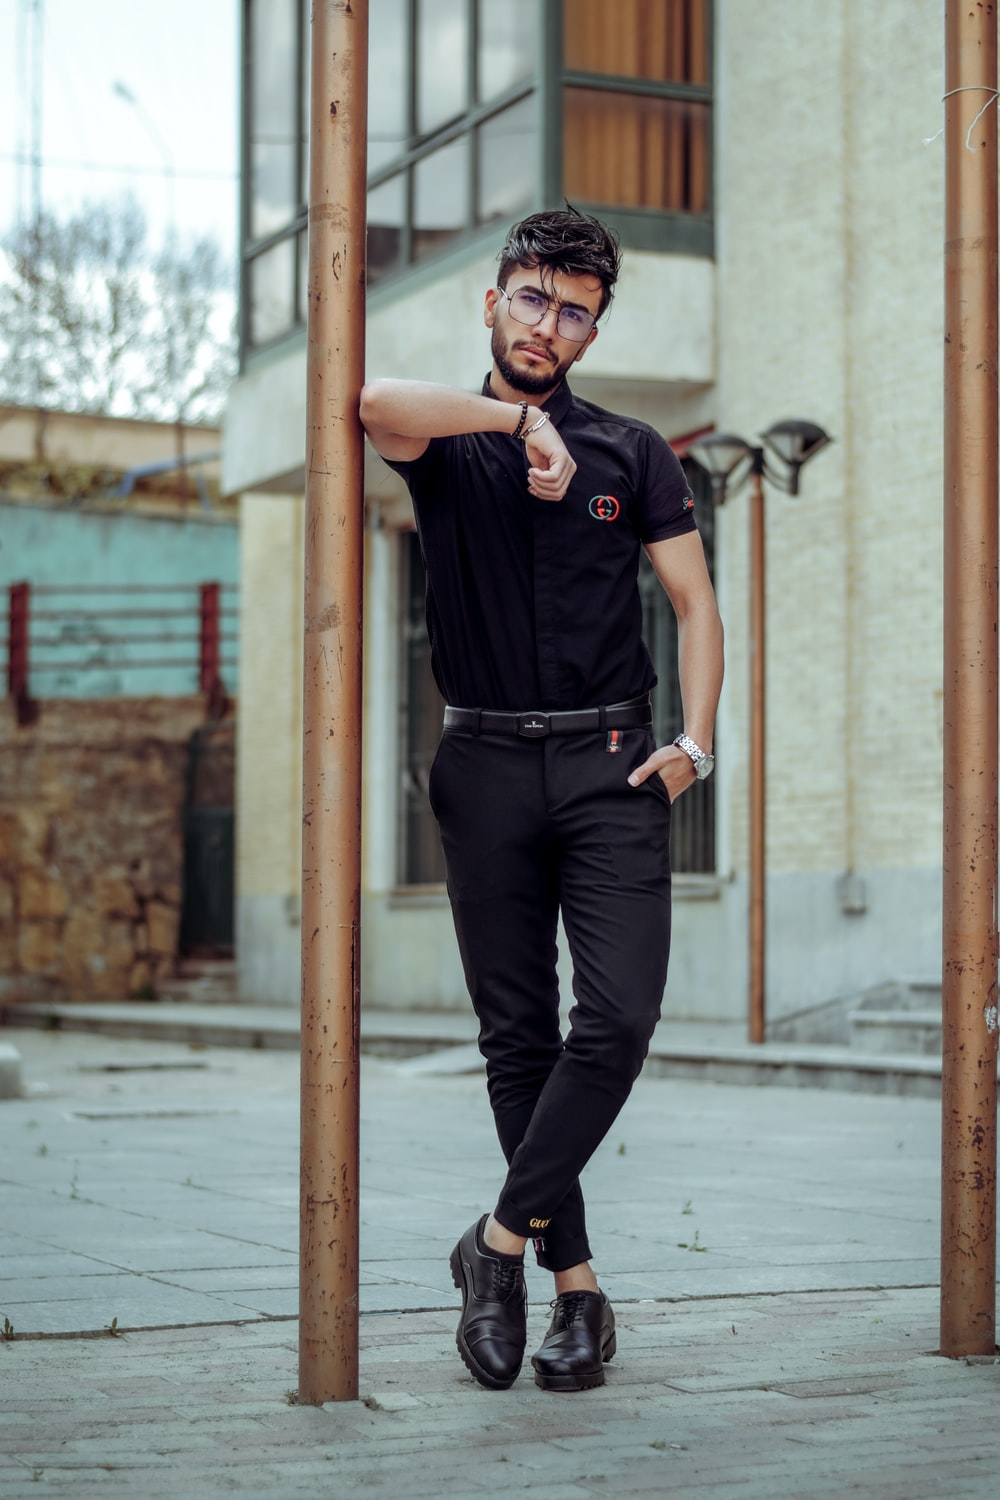 man in black polo shirt and black pants wearing black sunglasses standing on sidewalk during daytime